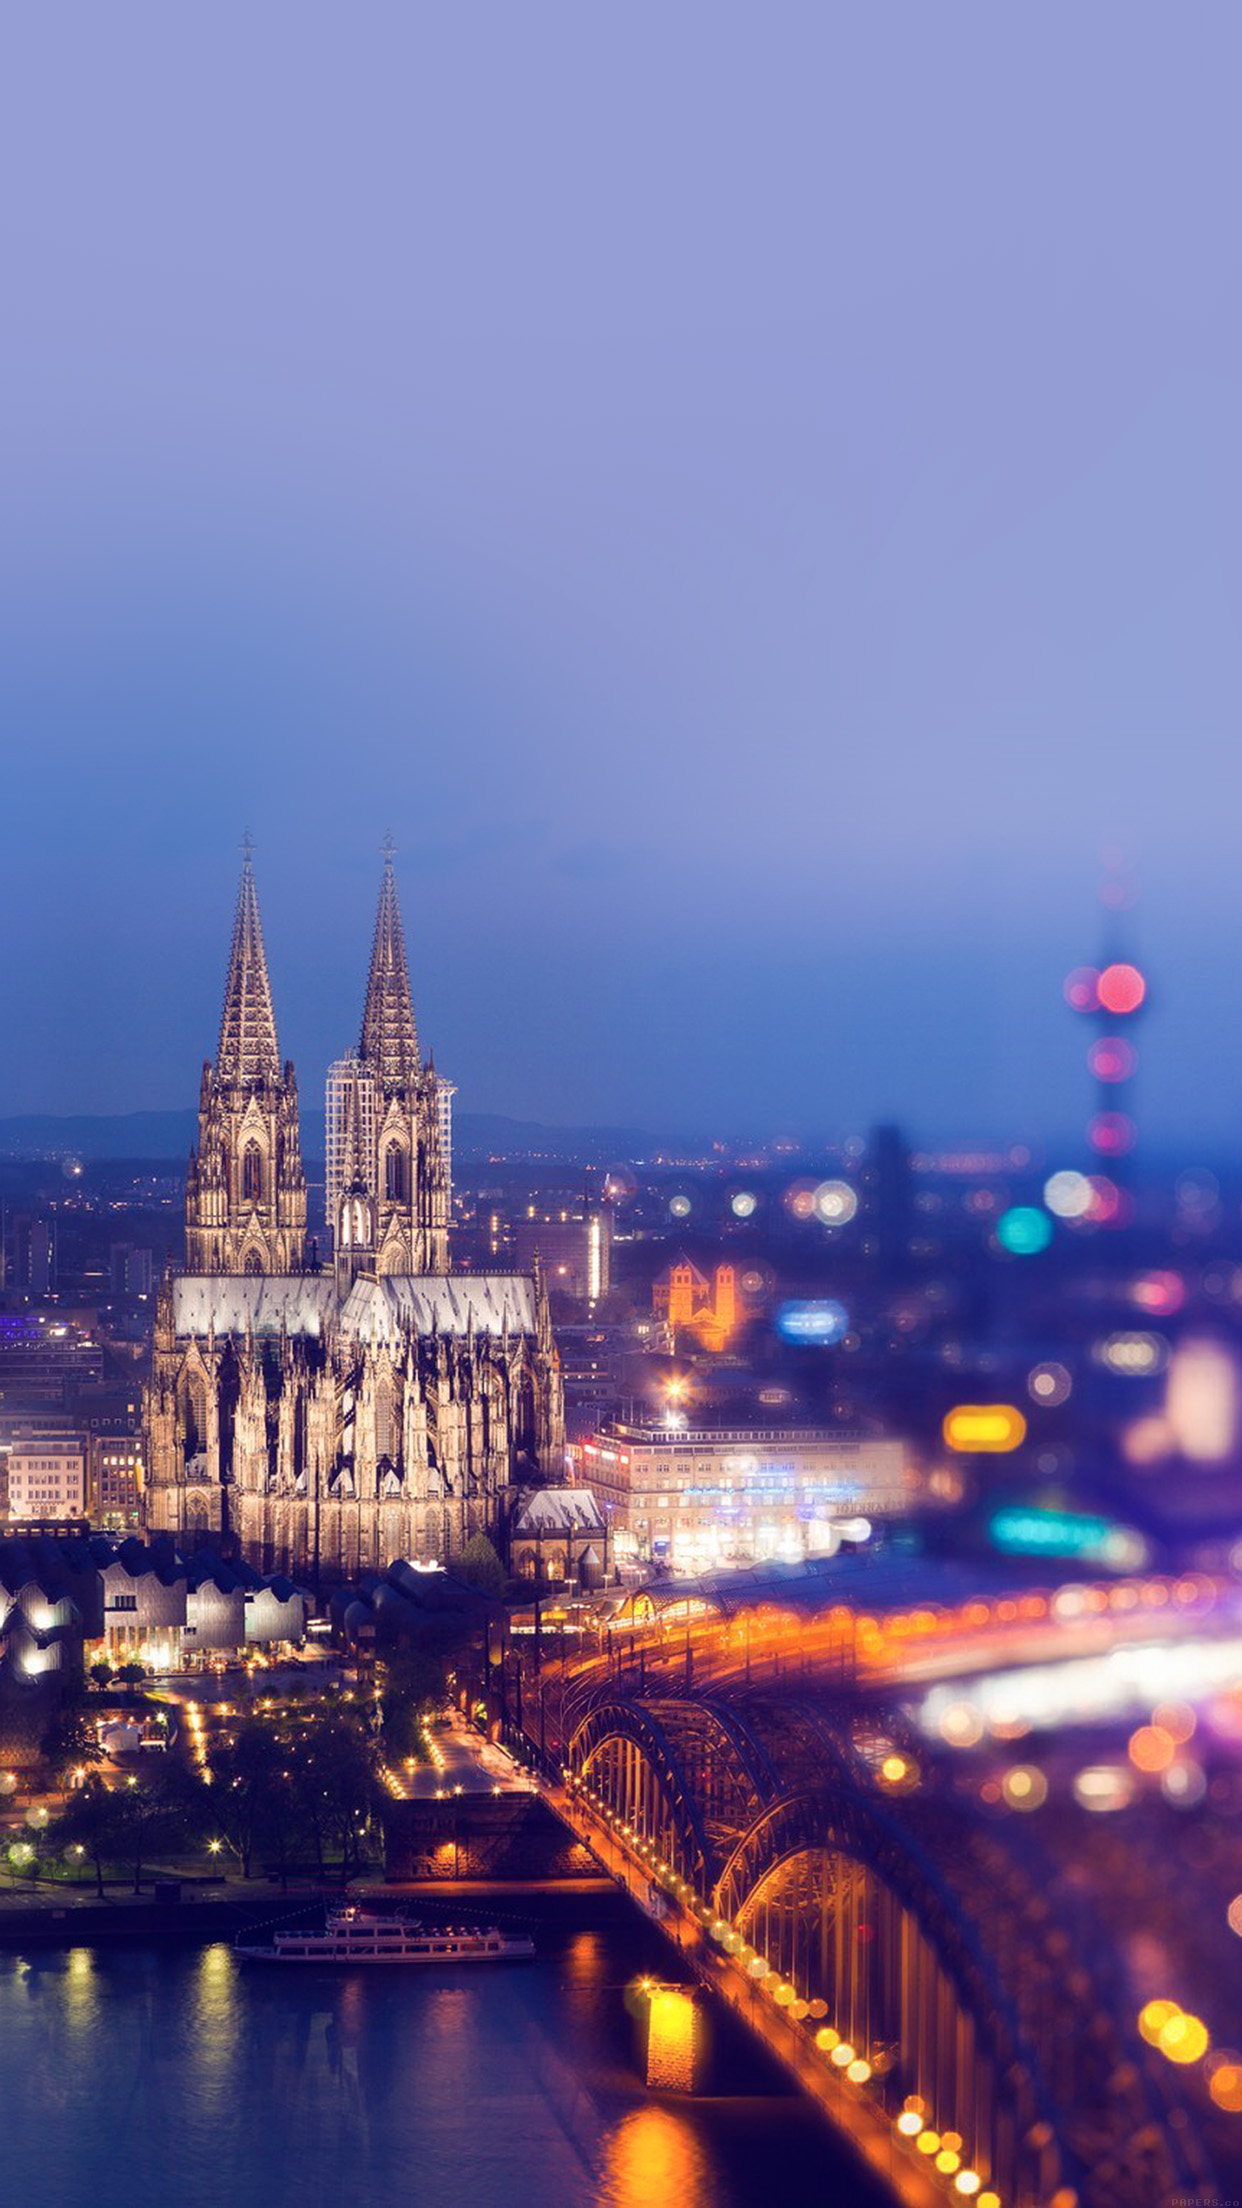 Iphone6papers Mj21 Cologne Cathedral Hohenzollern Bridge